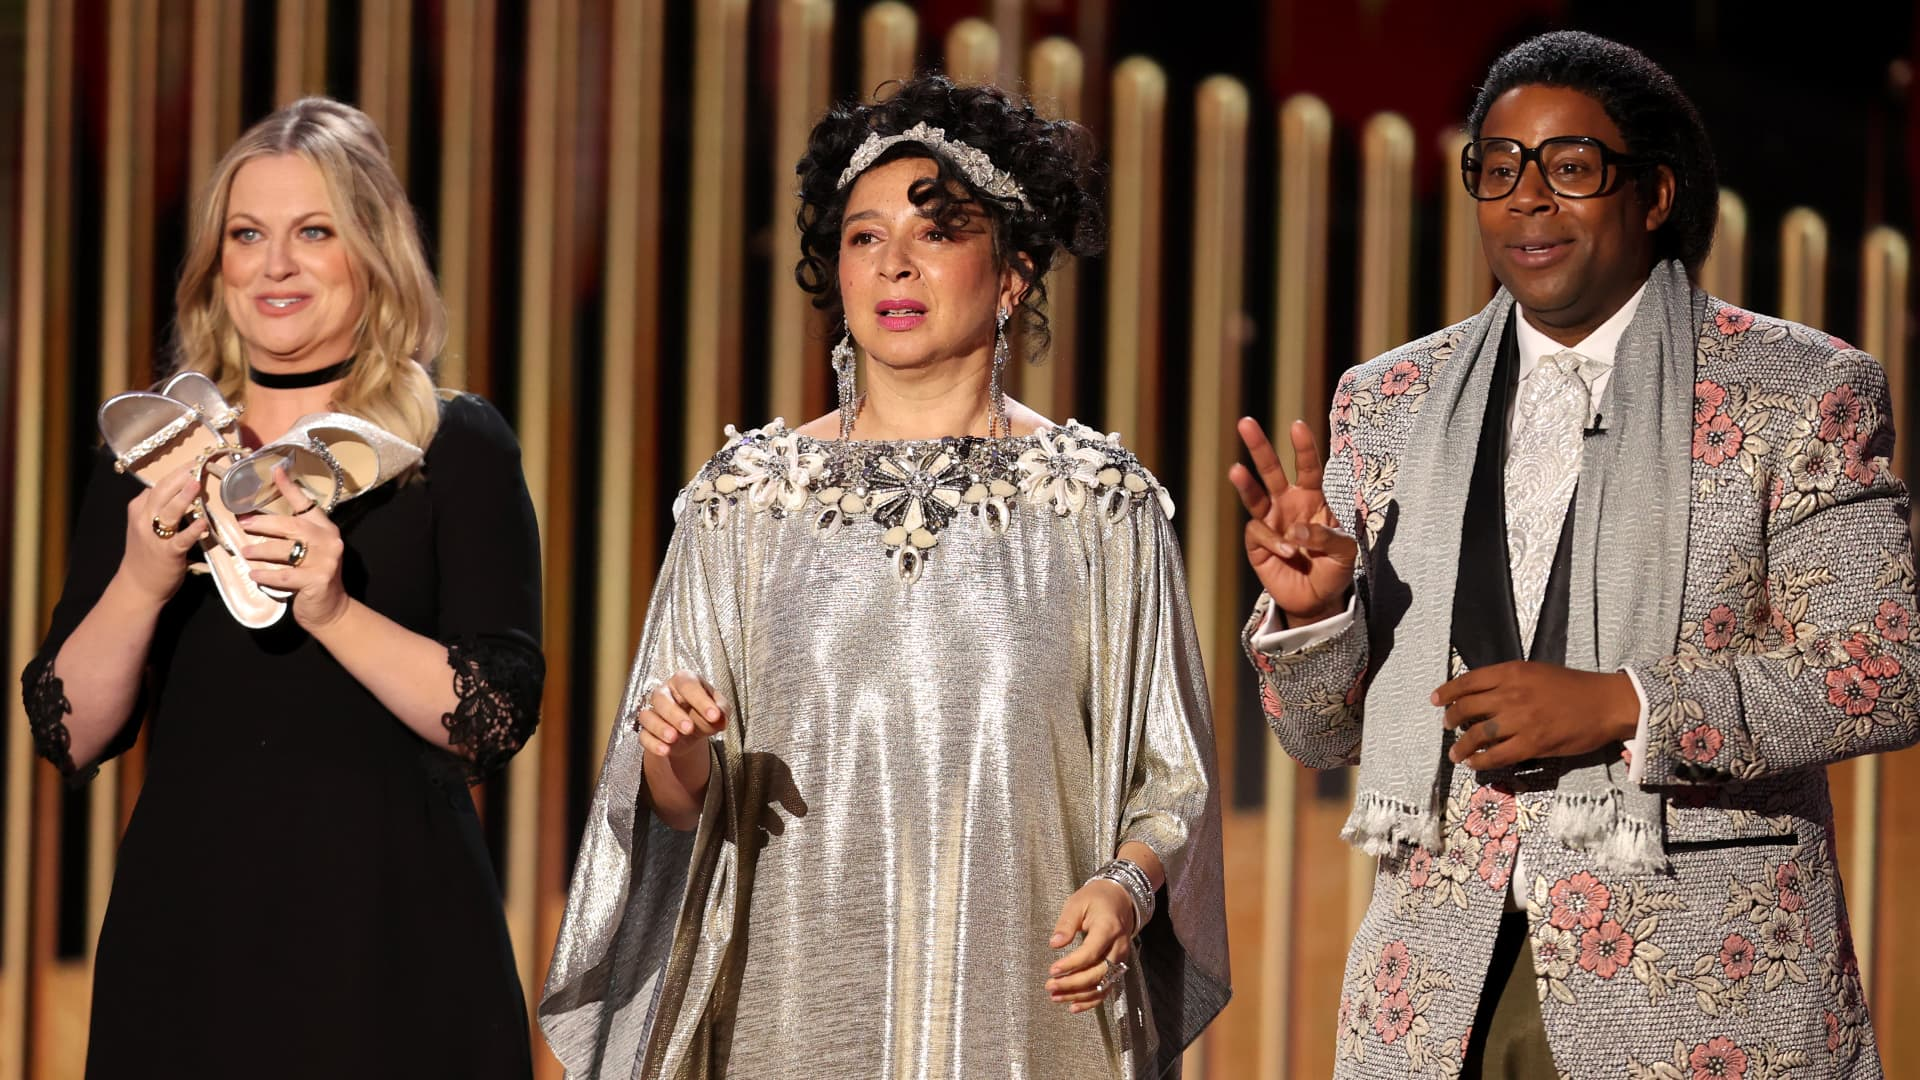 Pictured: (l-r) Amy Poehler, Maya Rudolph, and Kenan Thompson speak onstage at the 78th Annual Golden Globe Awards held at The Beverly Hilton and broadcast on February 28, 2021 in Beverly Hills, California.